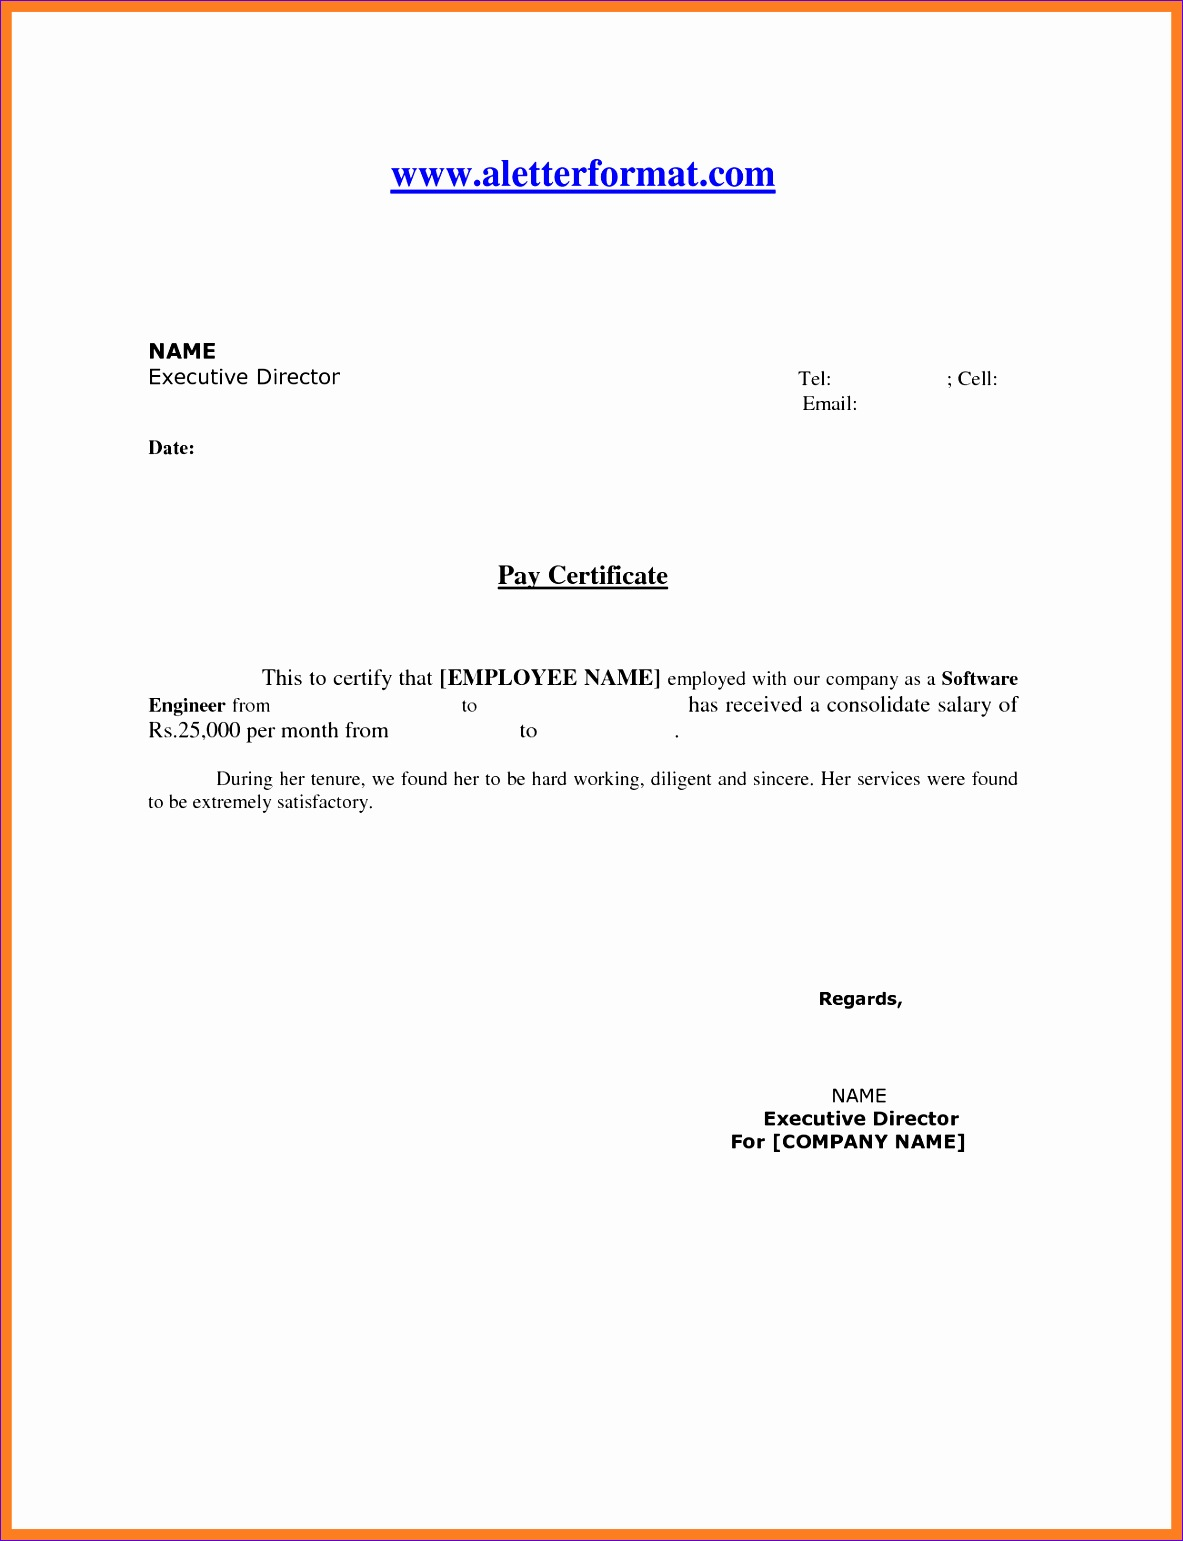 6 format for salary certificate 11831541